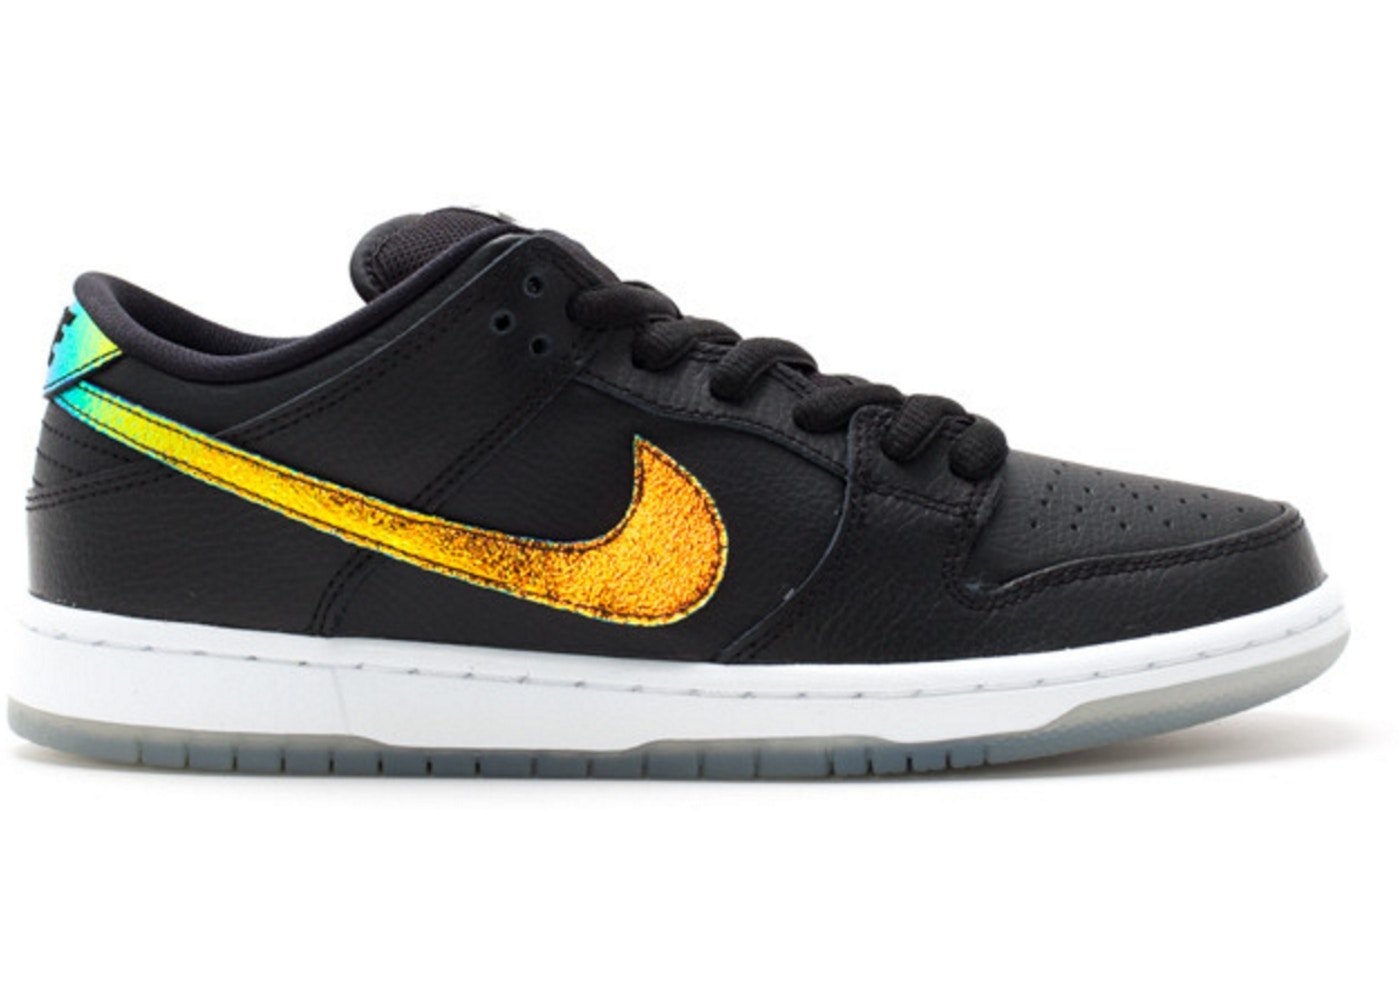 ナイキ NIKE ダンク エスビー スニーカー 【 SB DUNK LOW SPARKLE OIL SPILL BLACK WHITE MULTICOLOR 】 メンズ